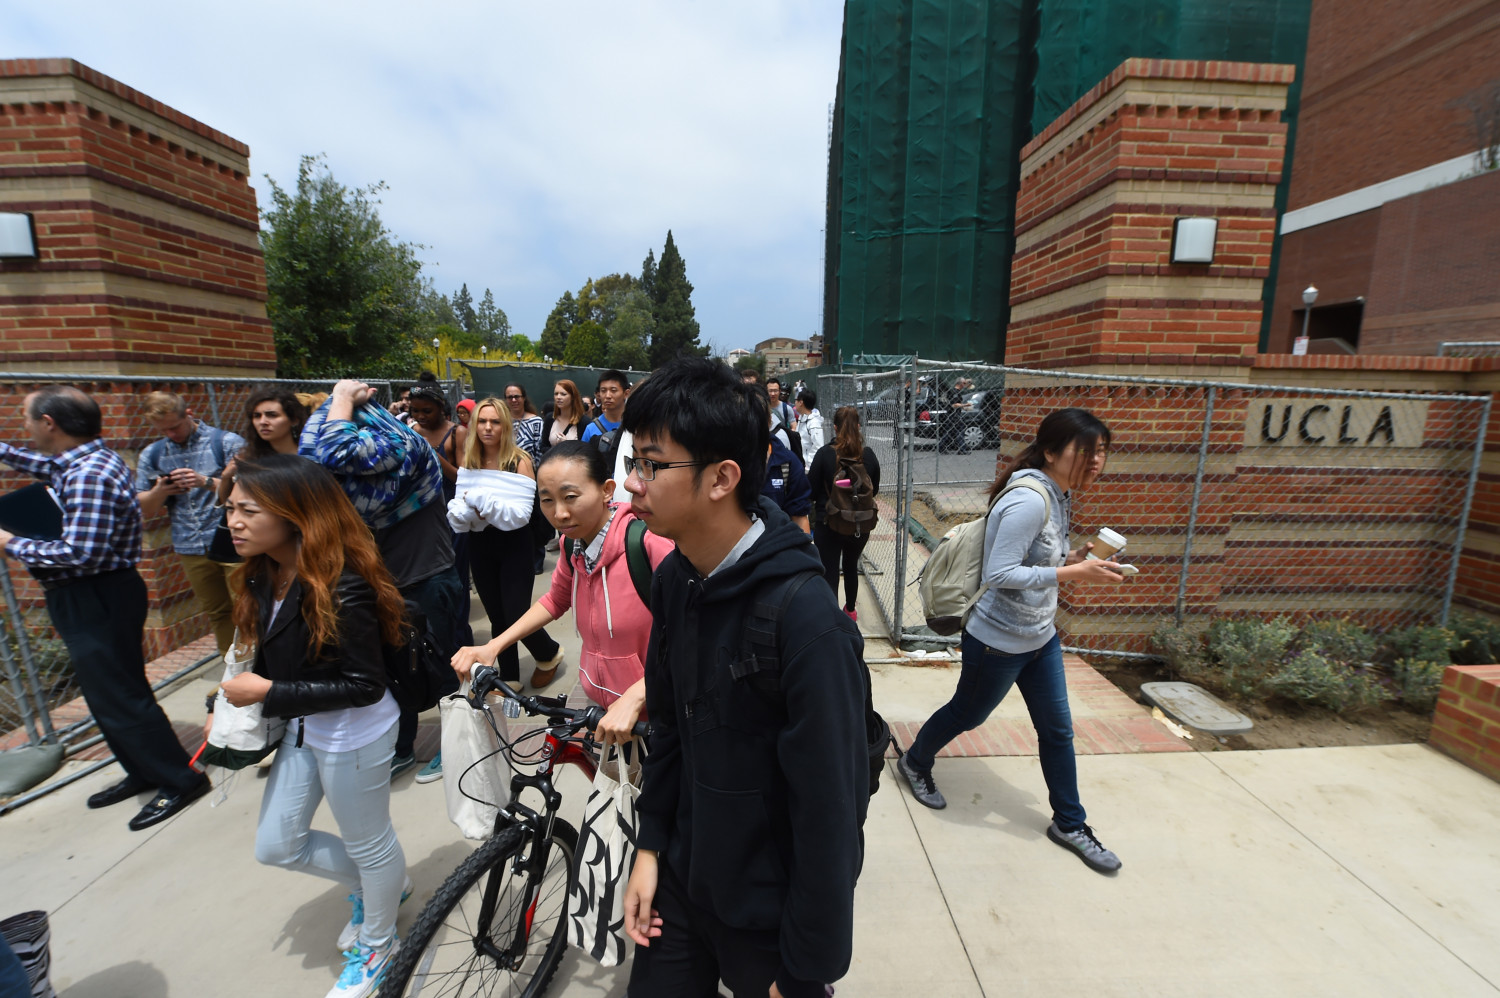 Students at the University of California in Los Angeles